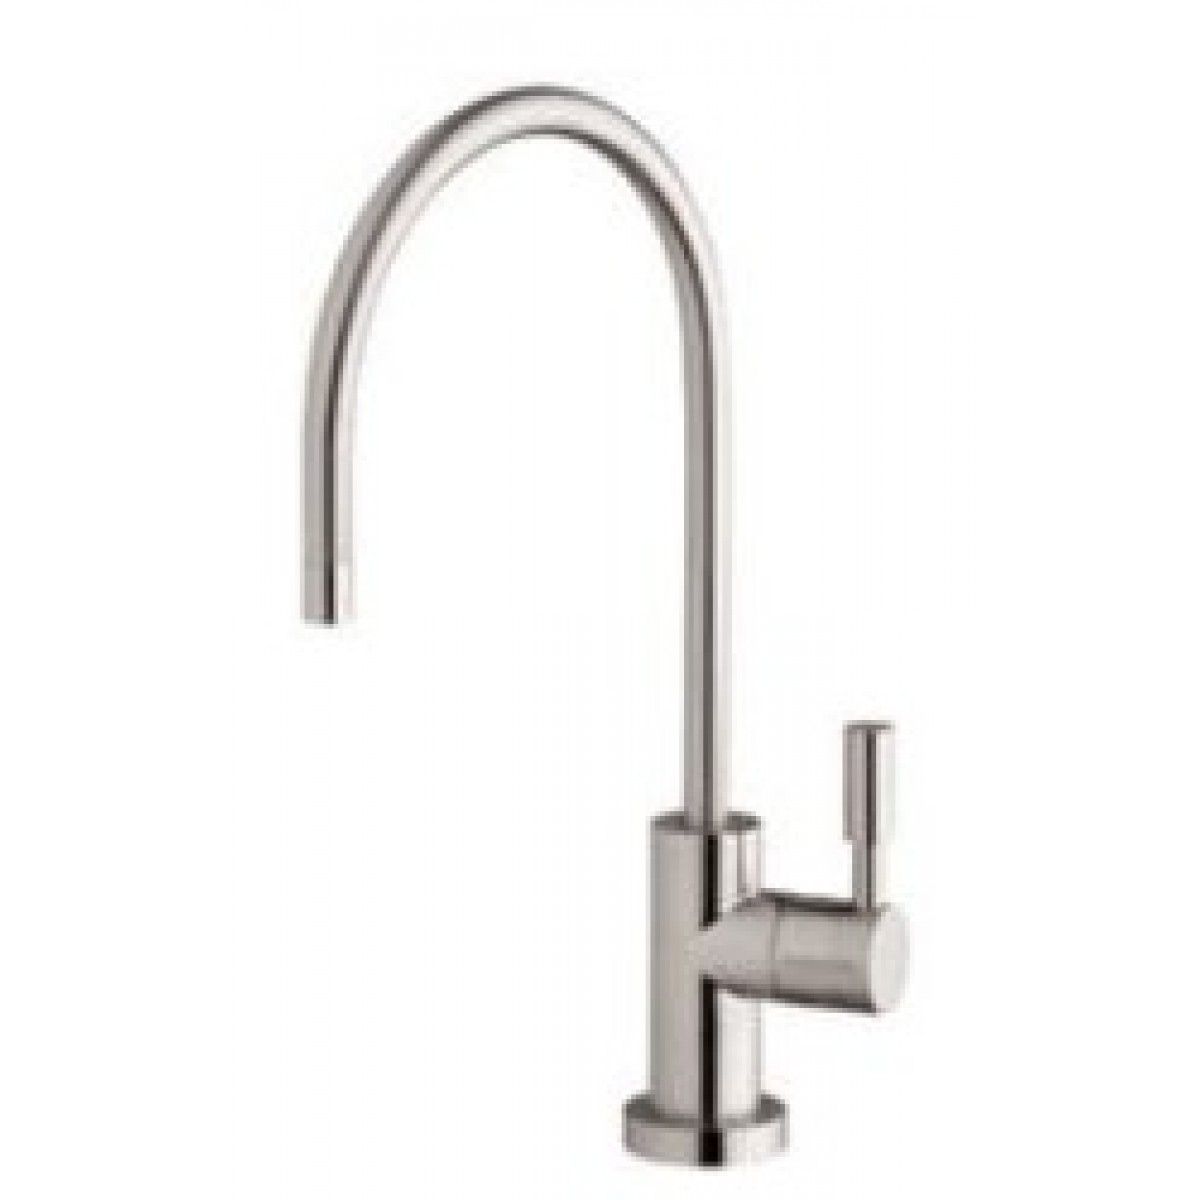 Ideas, air gap reverse osmosis faucet brushed nickel air gap reverse osmosis faucet brushed nickel replacement faucets for point of use water waterfilters 1200 x 1200  .